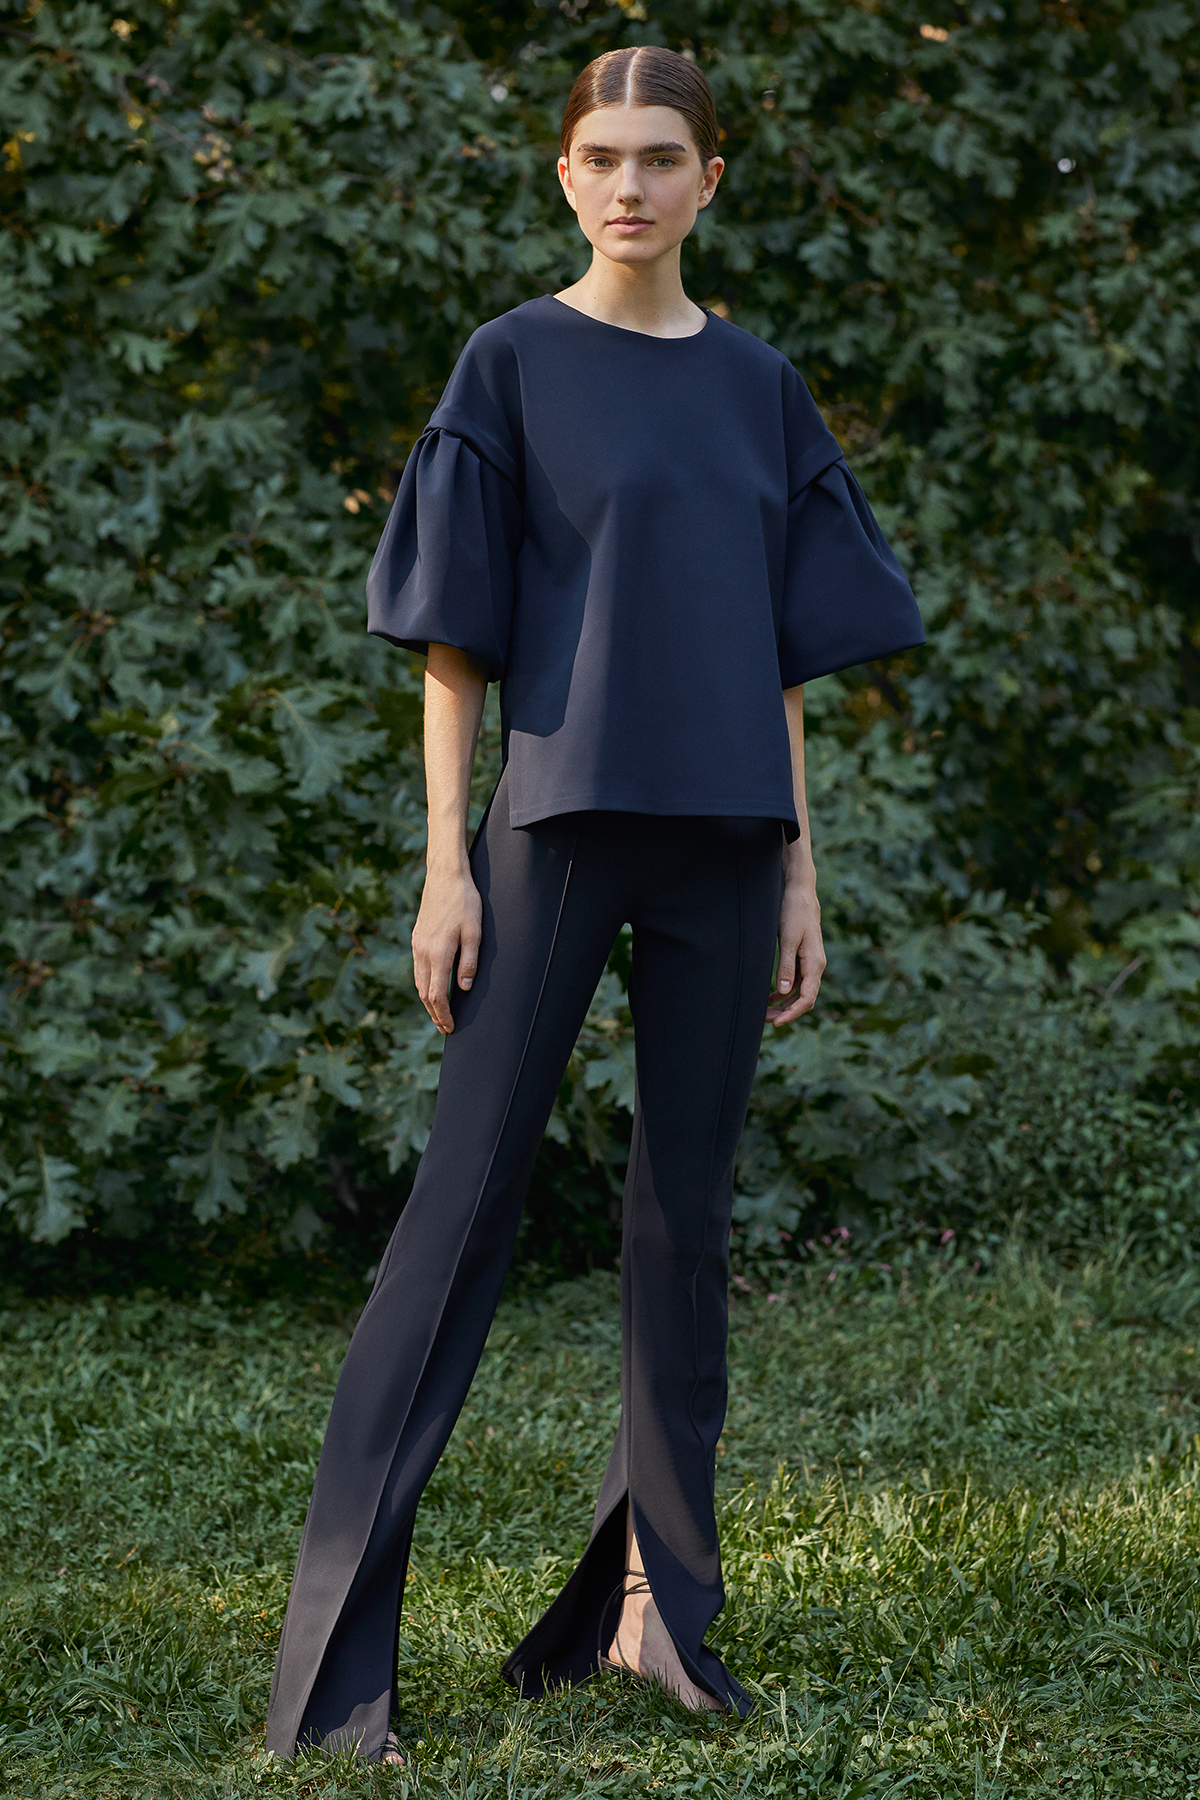 FLUTTER SLEEVE TOP IN BONDED NEOPRENE